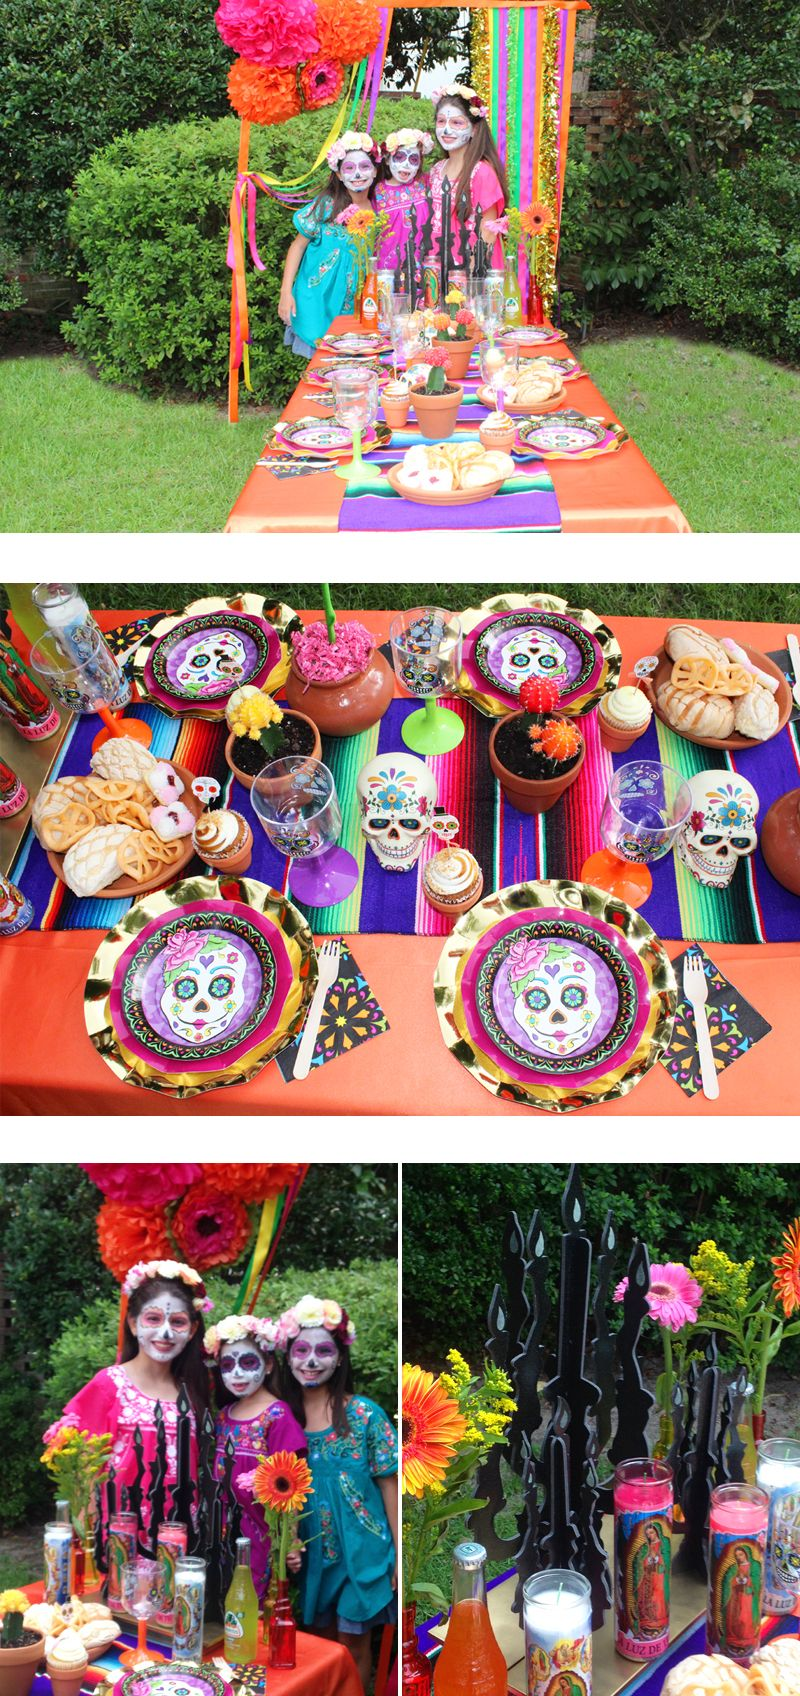 Halloween birthday party decorations - Our Halloween Day Of The Dead Party Has All The Elements You Will Need To Throw A Spooky Party Lots Of Sugar Skull Decorations And Dia De Los Muertos Party